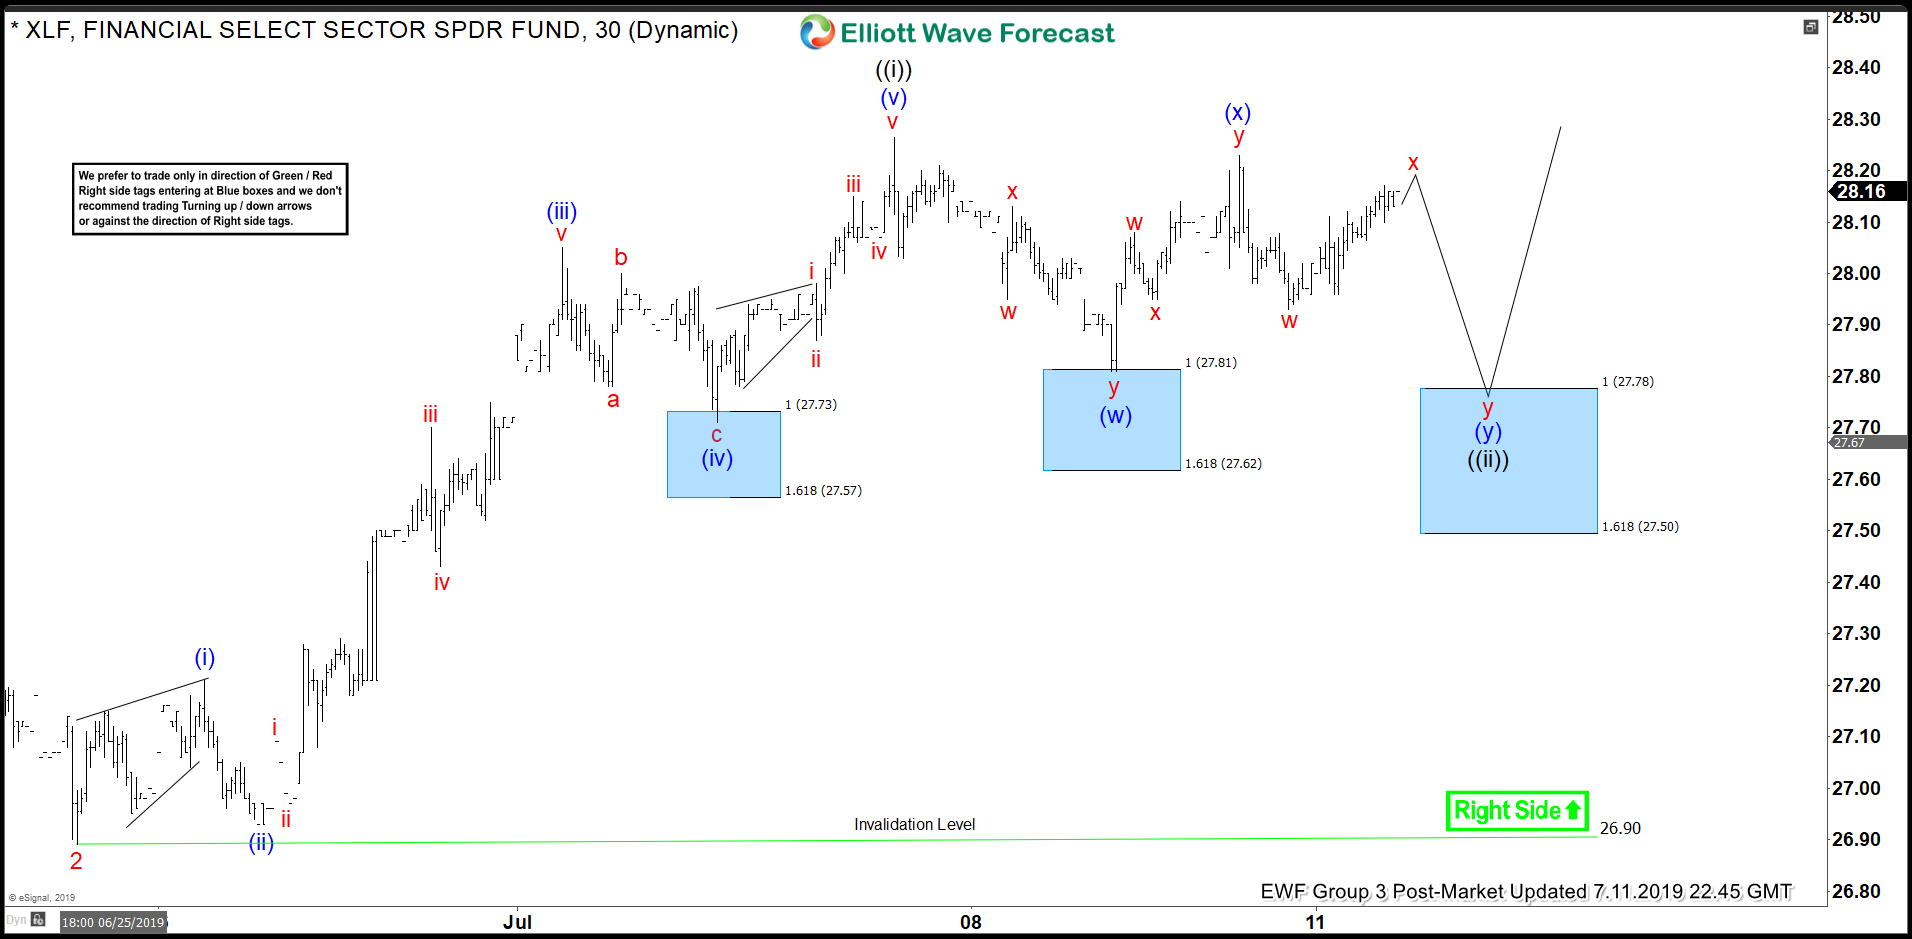 Elliott Wave View: Right Side in XLF Remains Higher